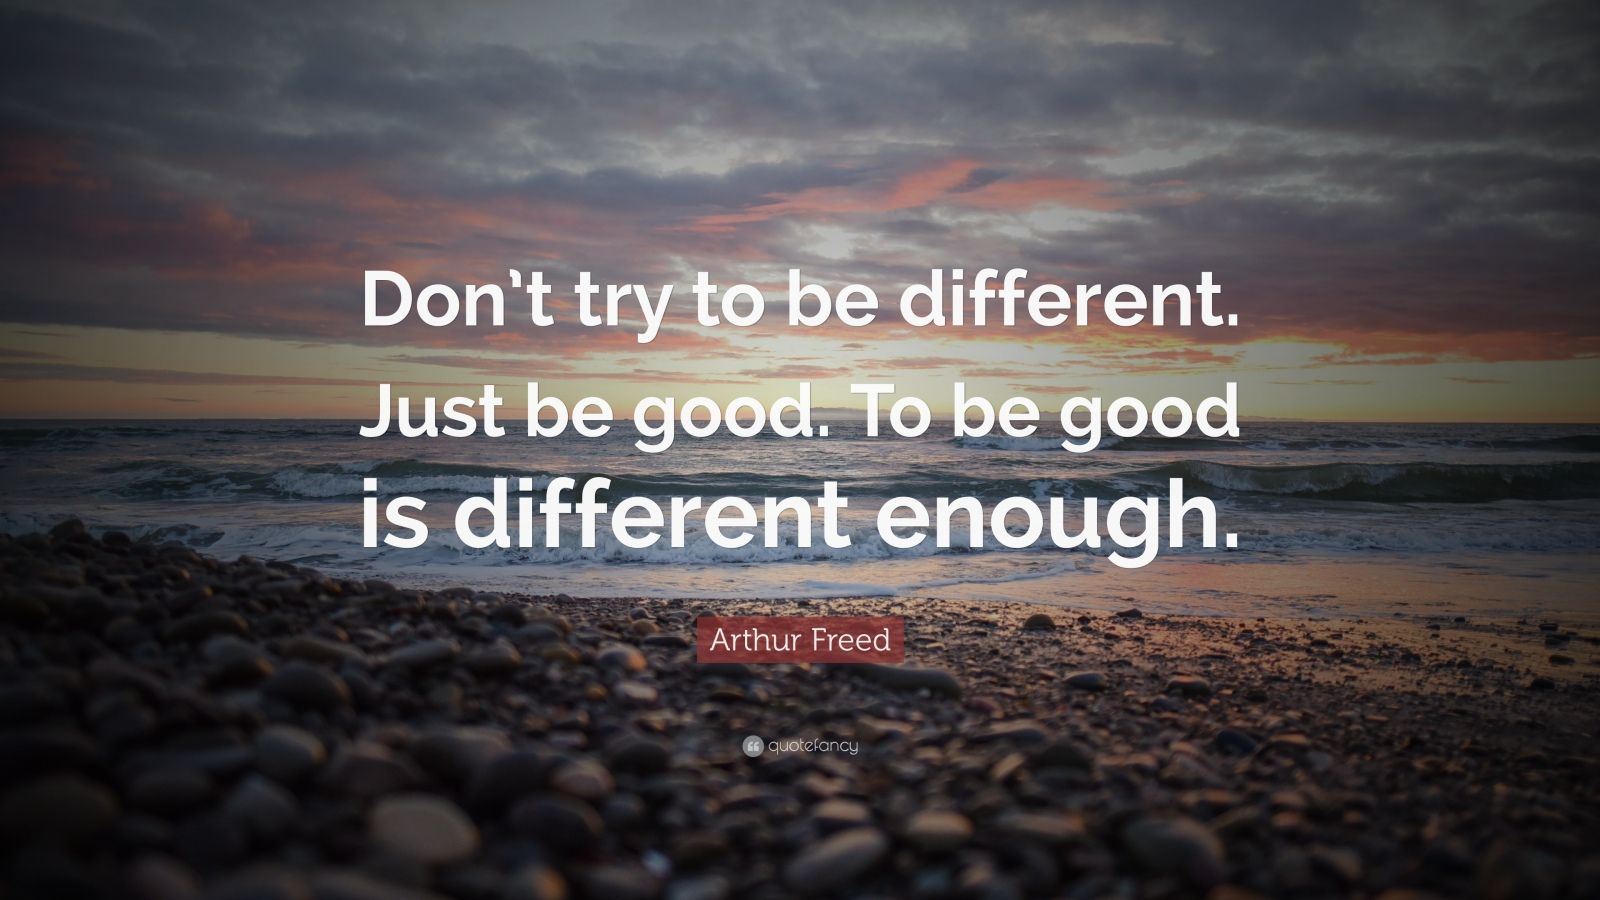 "Integrity Quotes: ""Don't try to be different. Just be good. To be good is different enough."" — Arthur Freed"